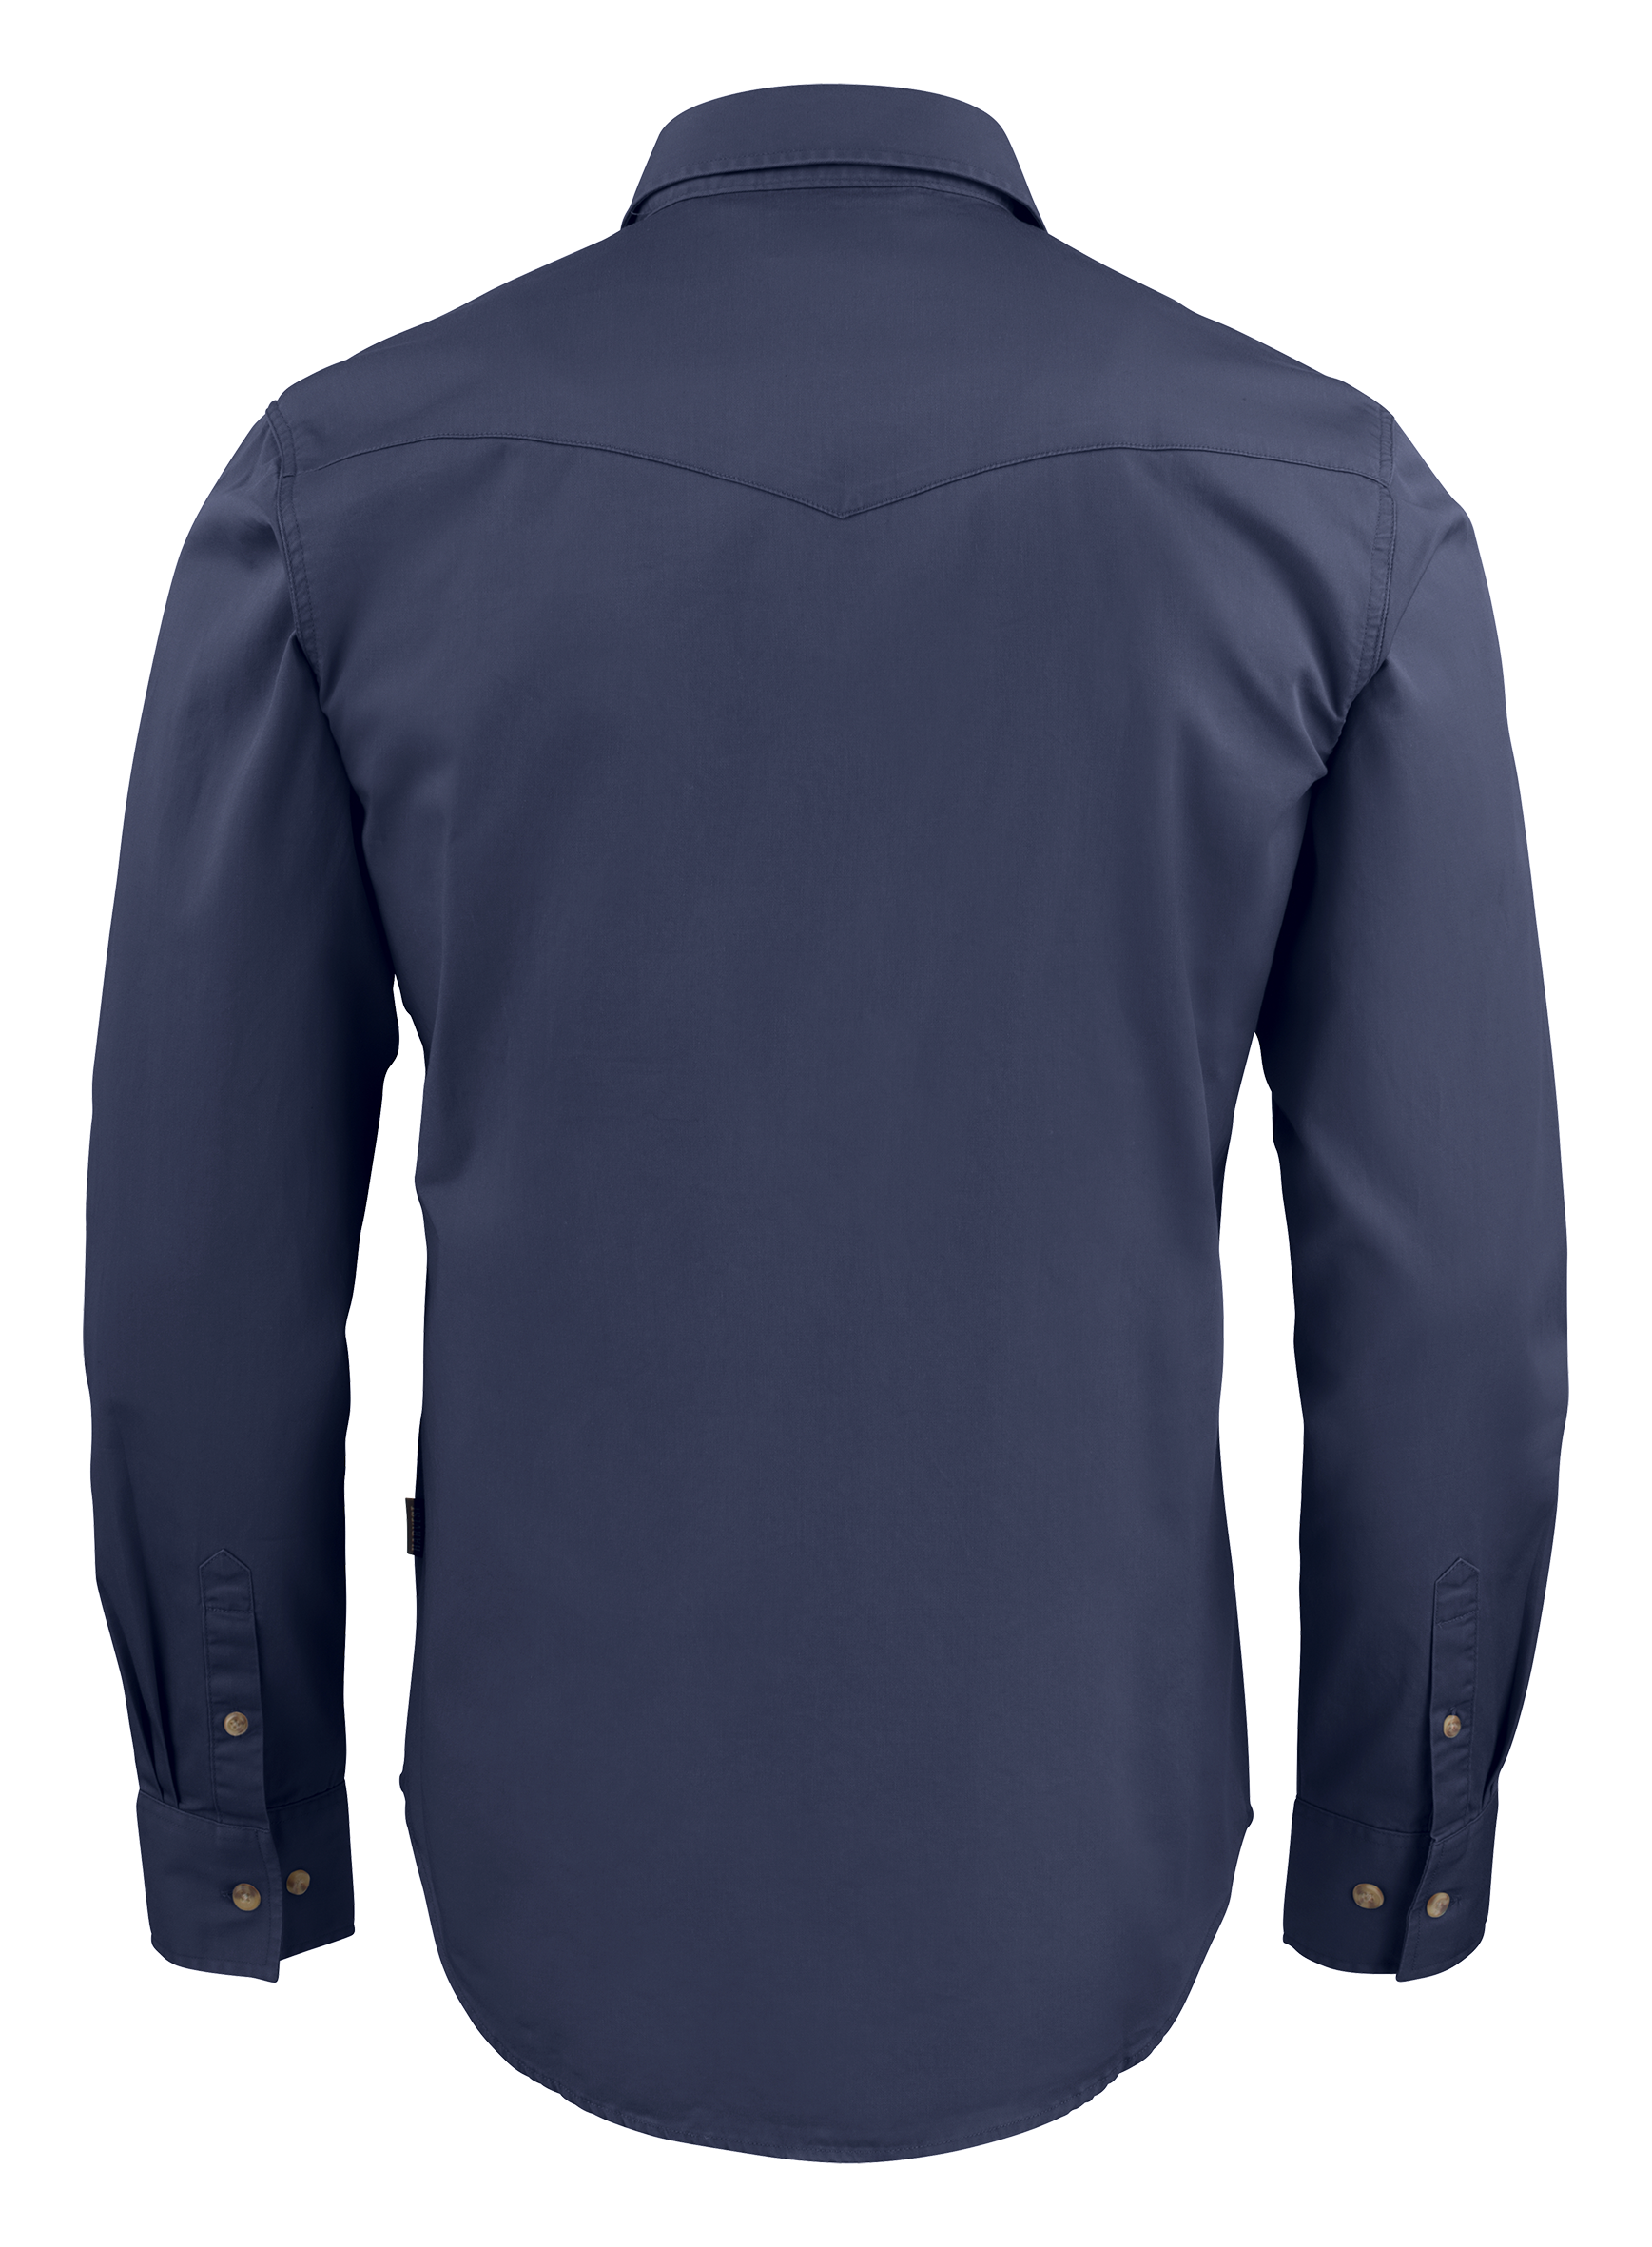 Unisex Treemore Shirt in 600 Navy Blue (Back View)